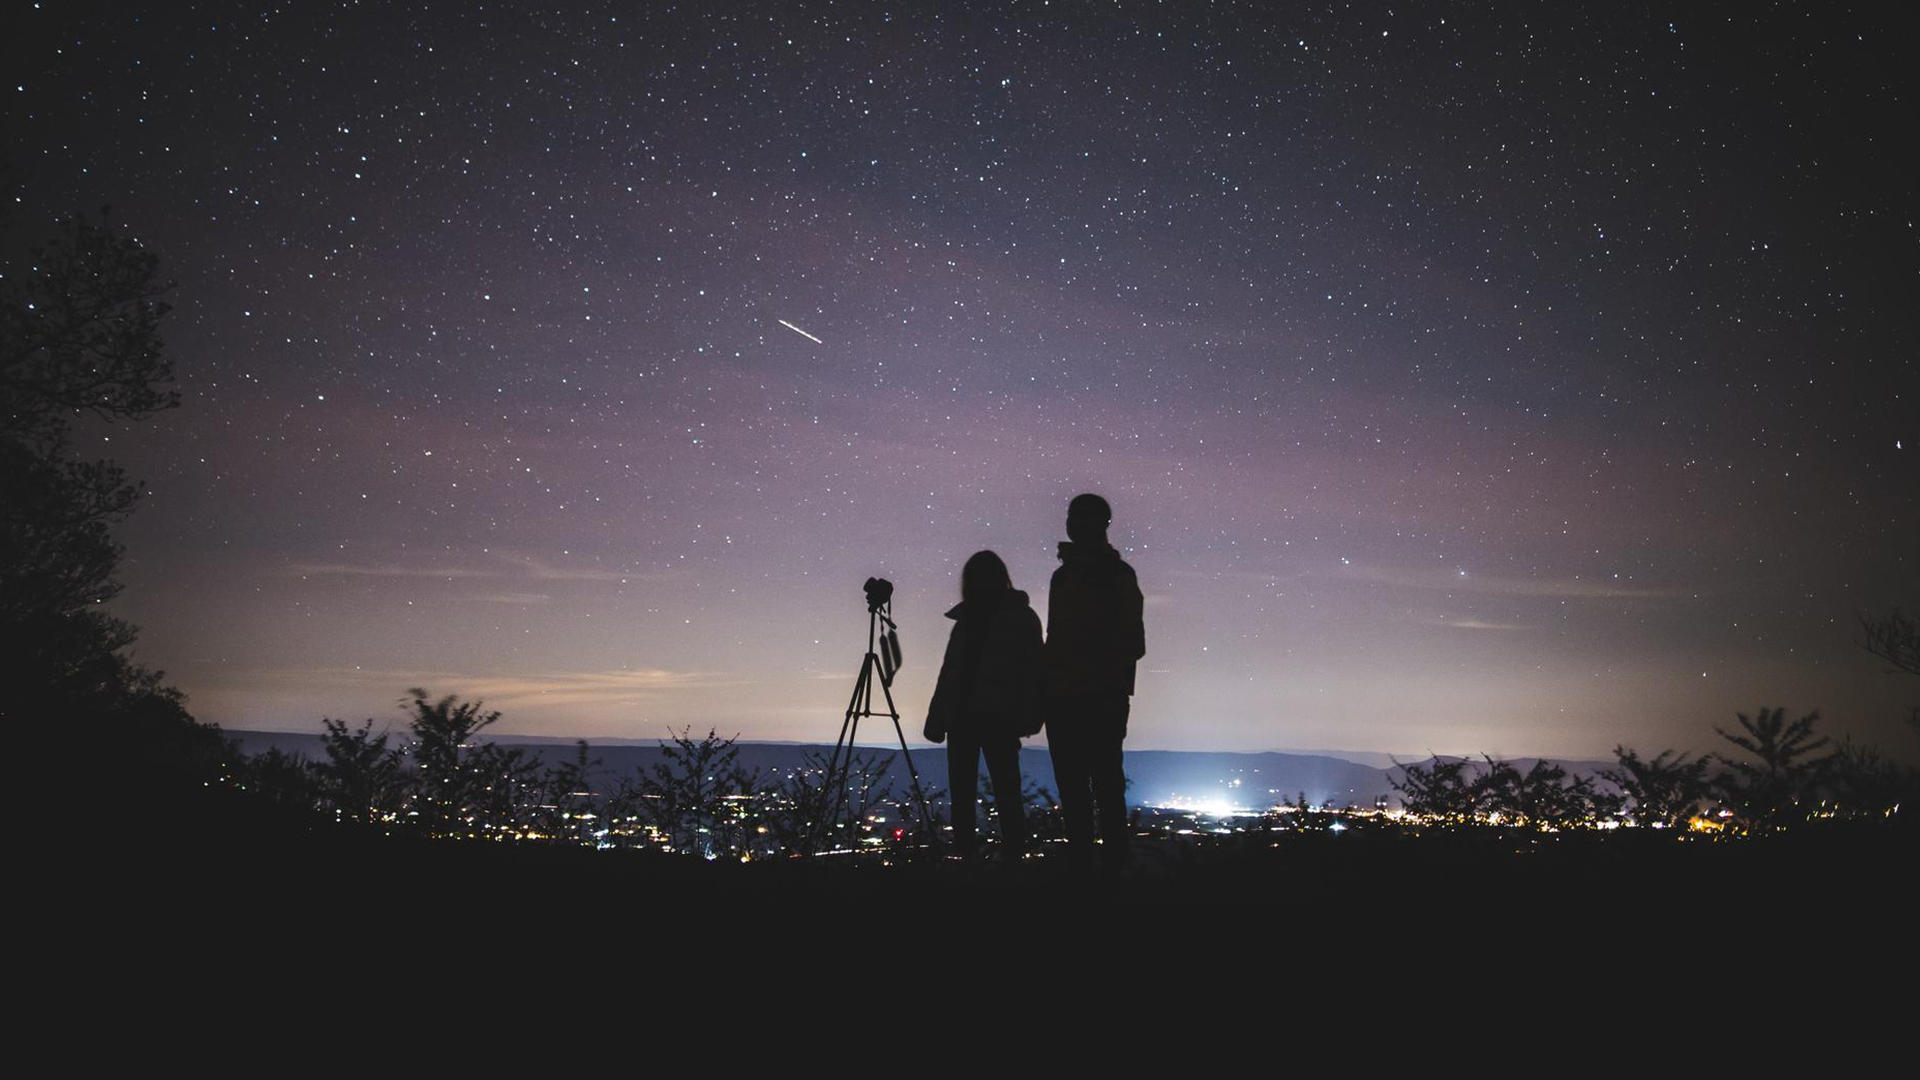 Night sky and people silhouette